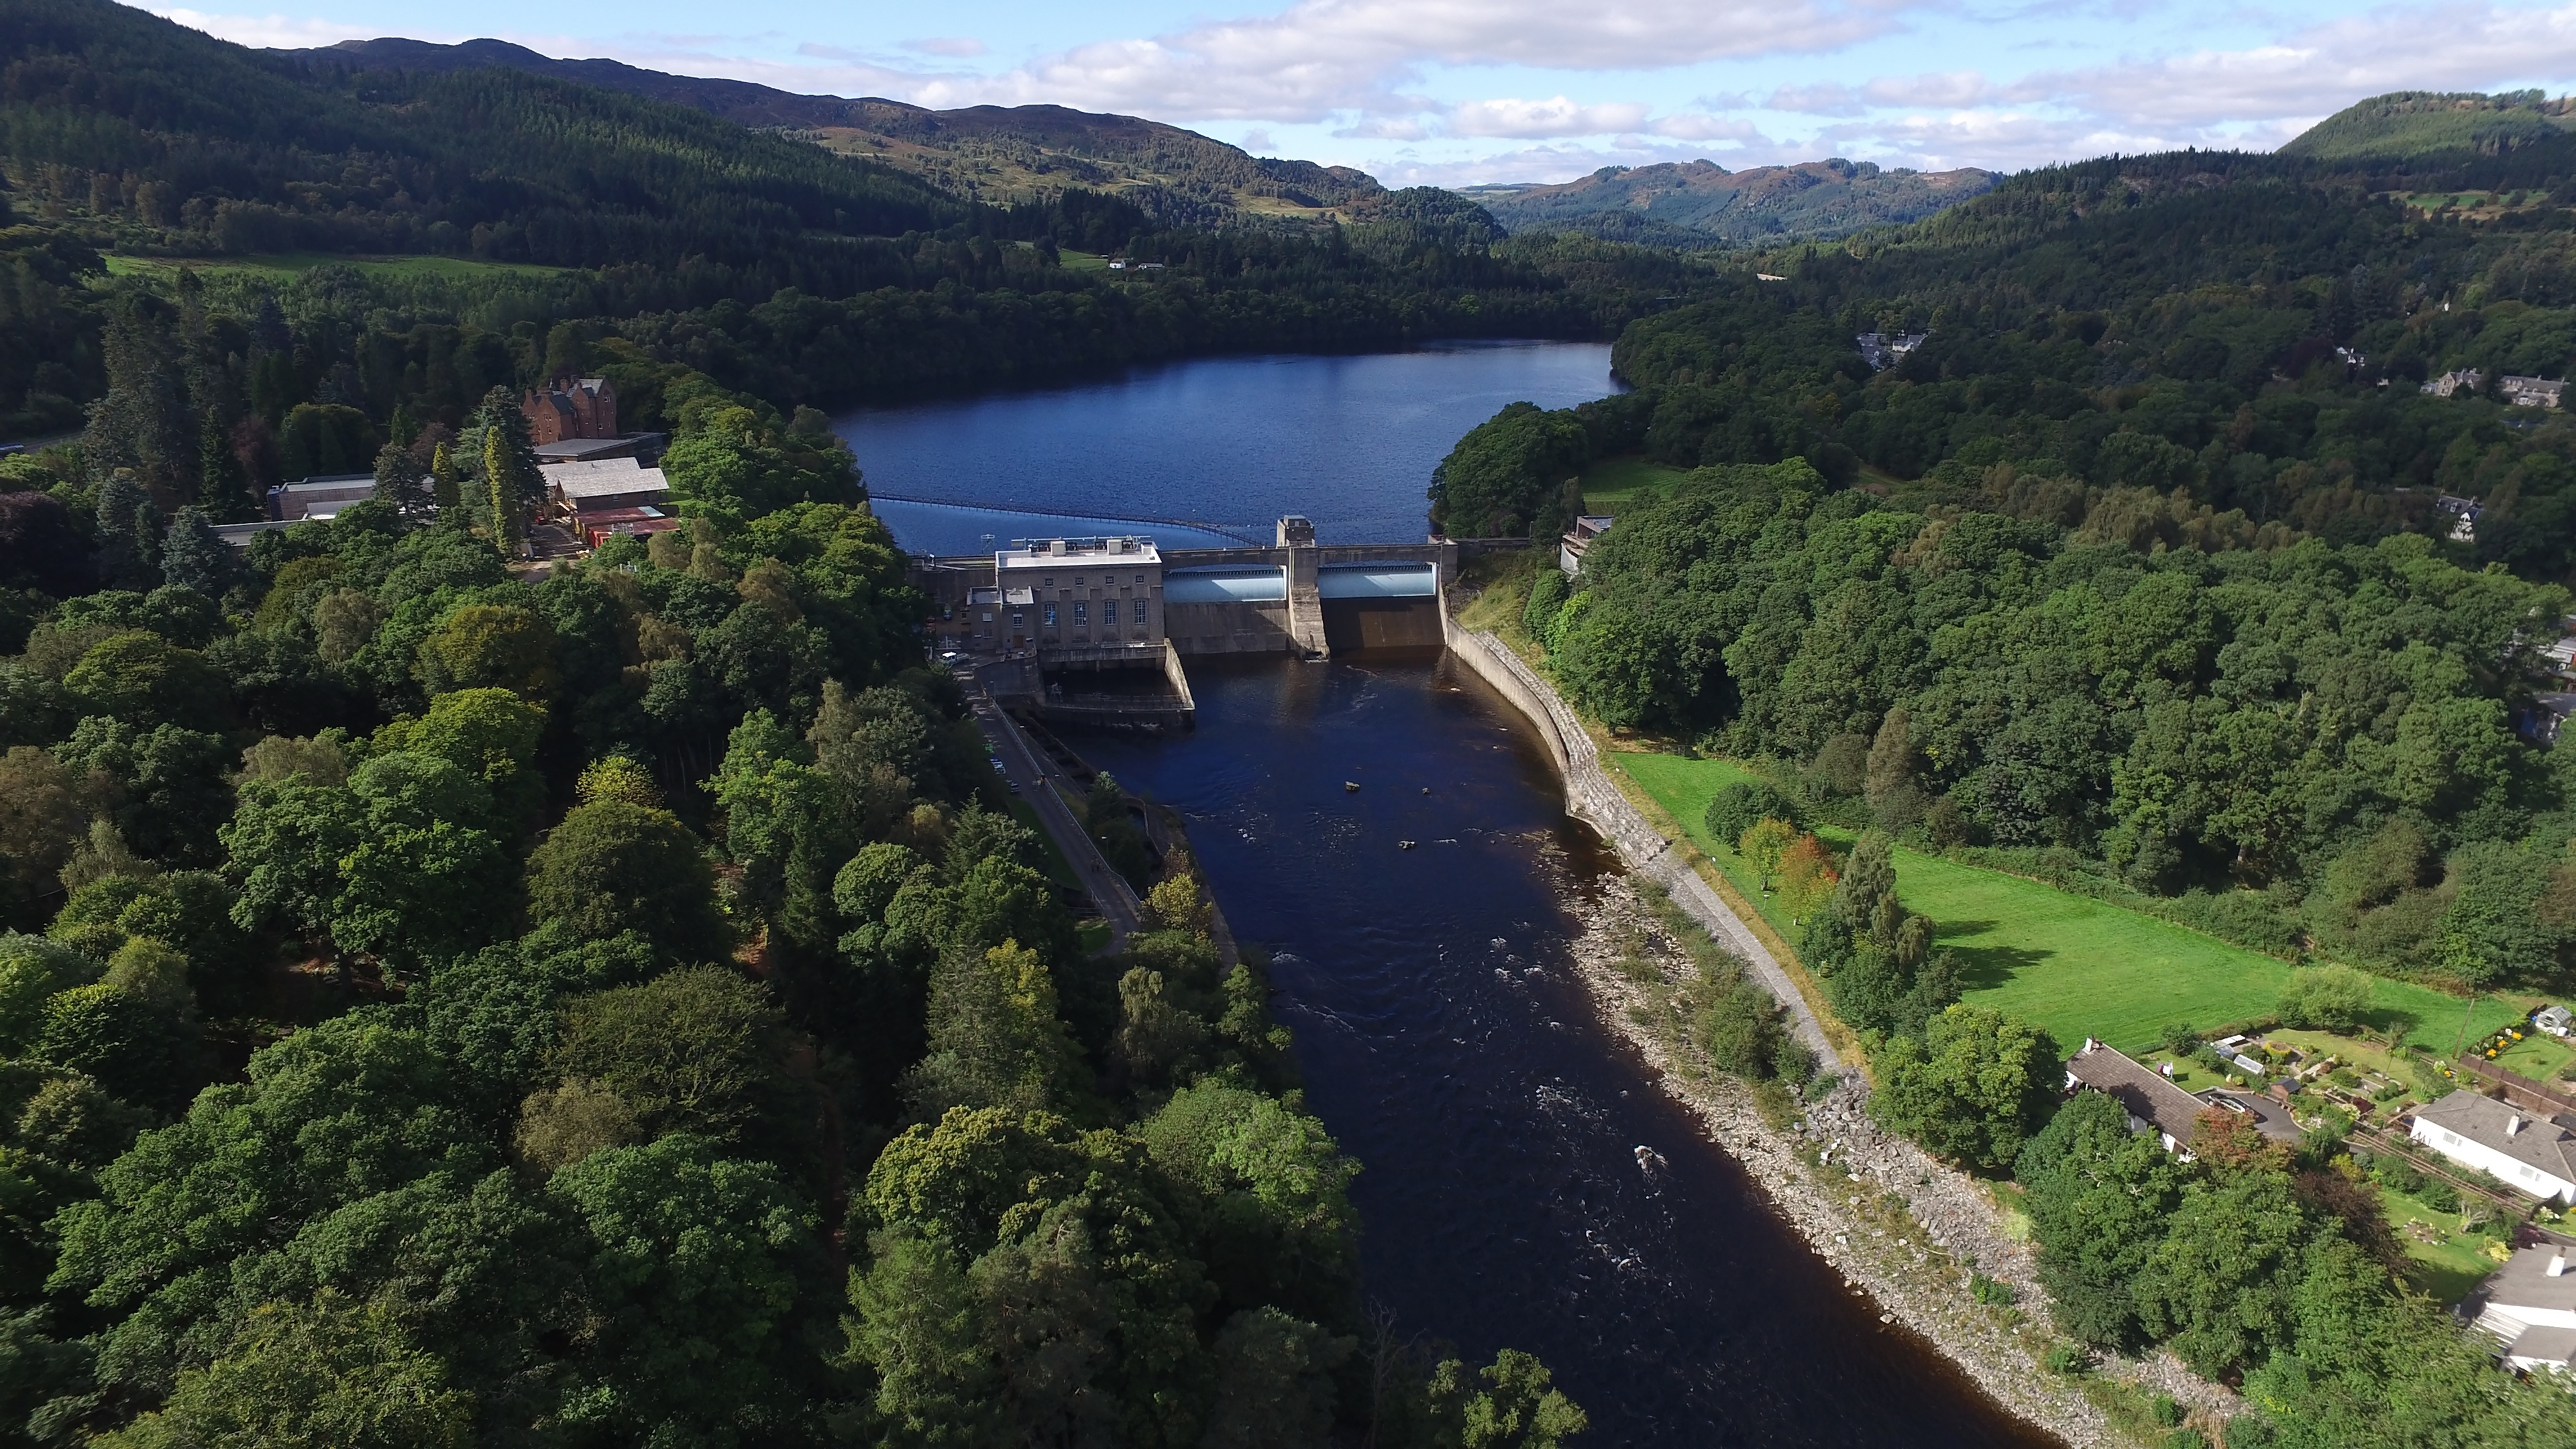 Pitlochry dam and visitor centre